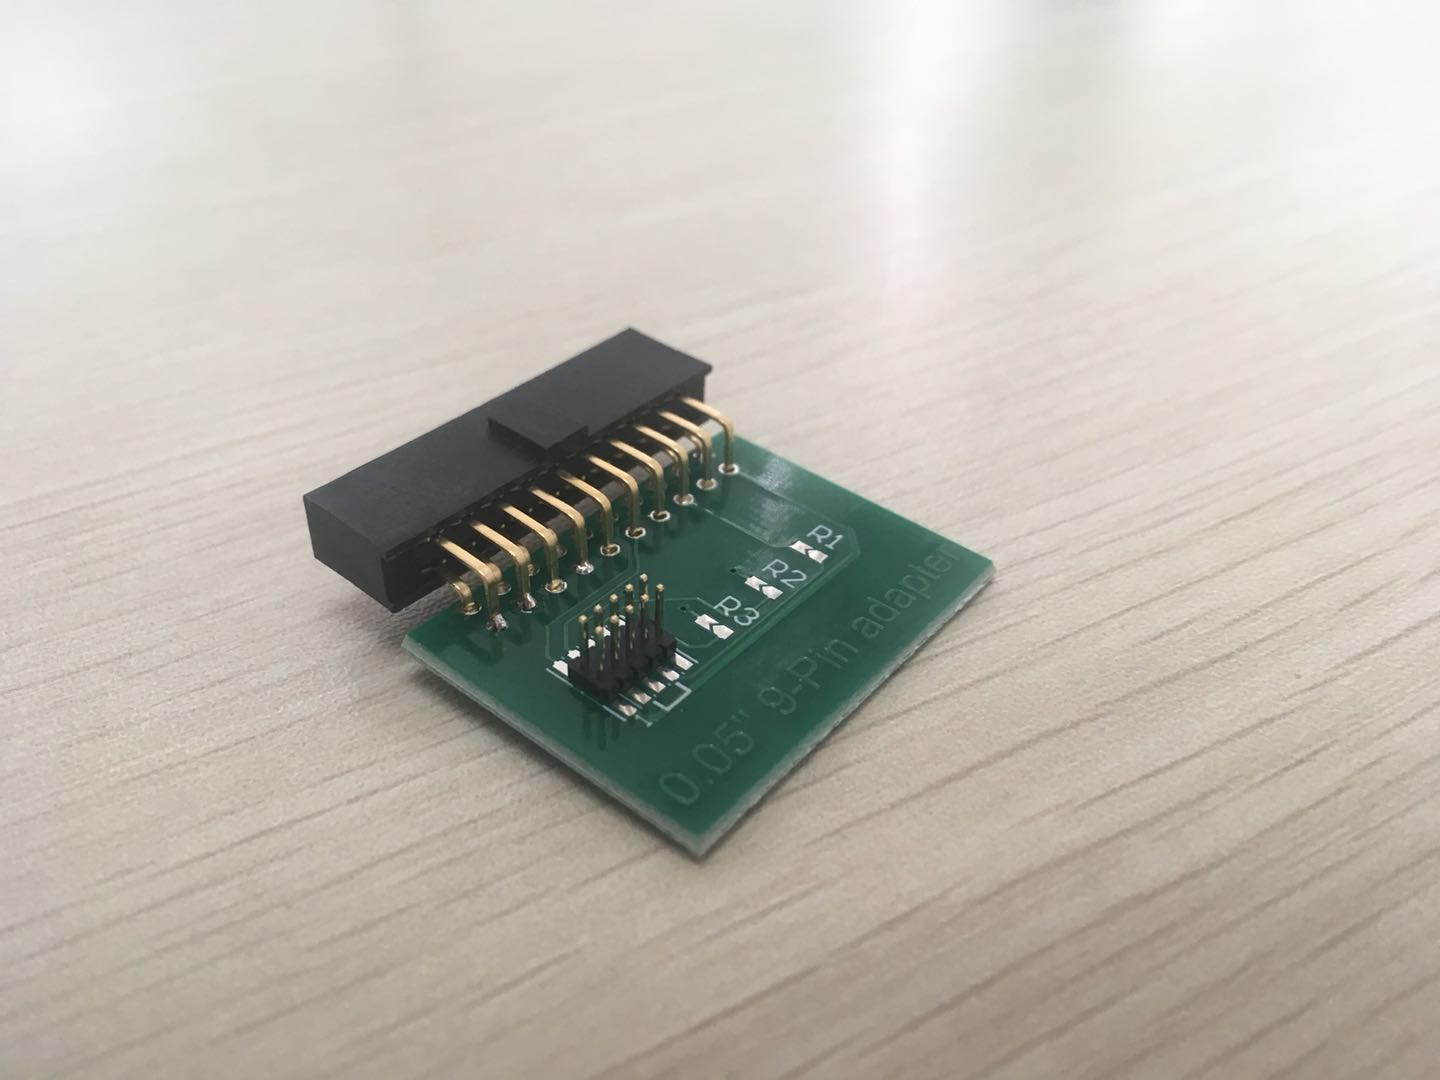 20 pin 2 54 pitch JTAG interface to 10 pin 1 27mm pitch SWD interface